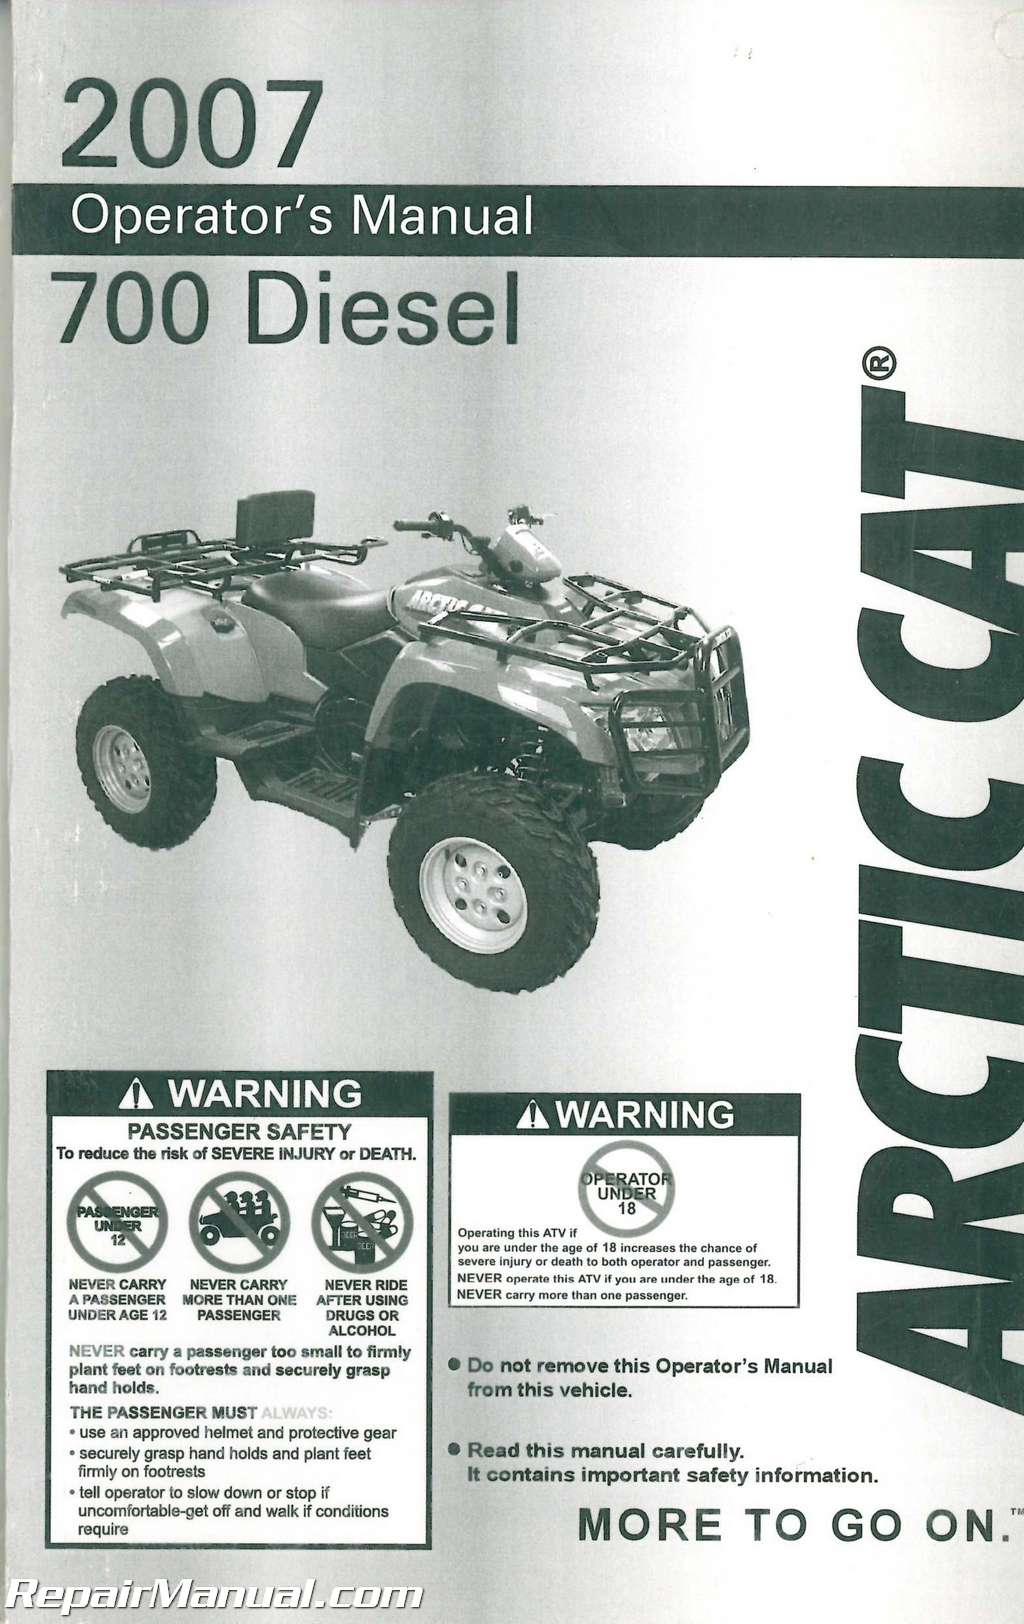 2007 arctic cat 700 diesel atv owners manual rh repairmanual com 2007 arctic cat atv owners manual pdf Arctic Cat ATV Parts Diagrams